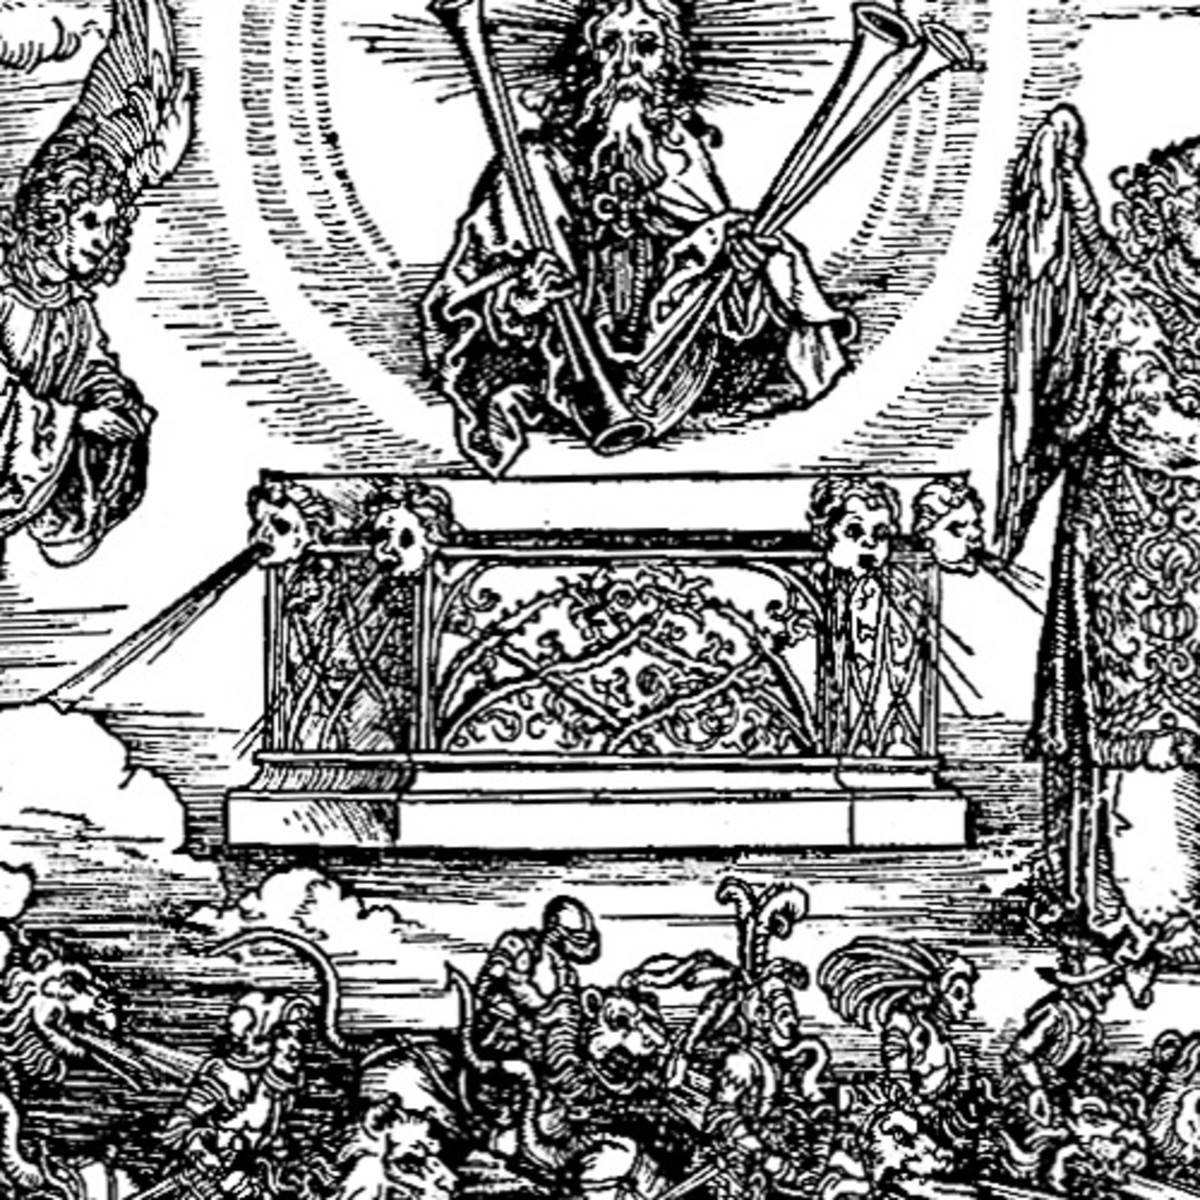 """Here we show another portion of """"The Battle of the Angels"""" by Albrecht Durer."""